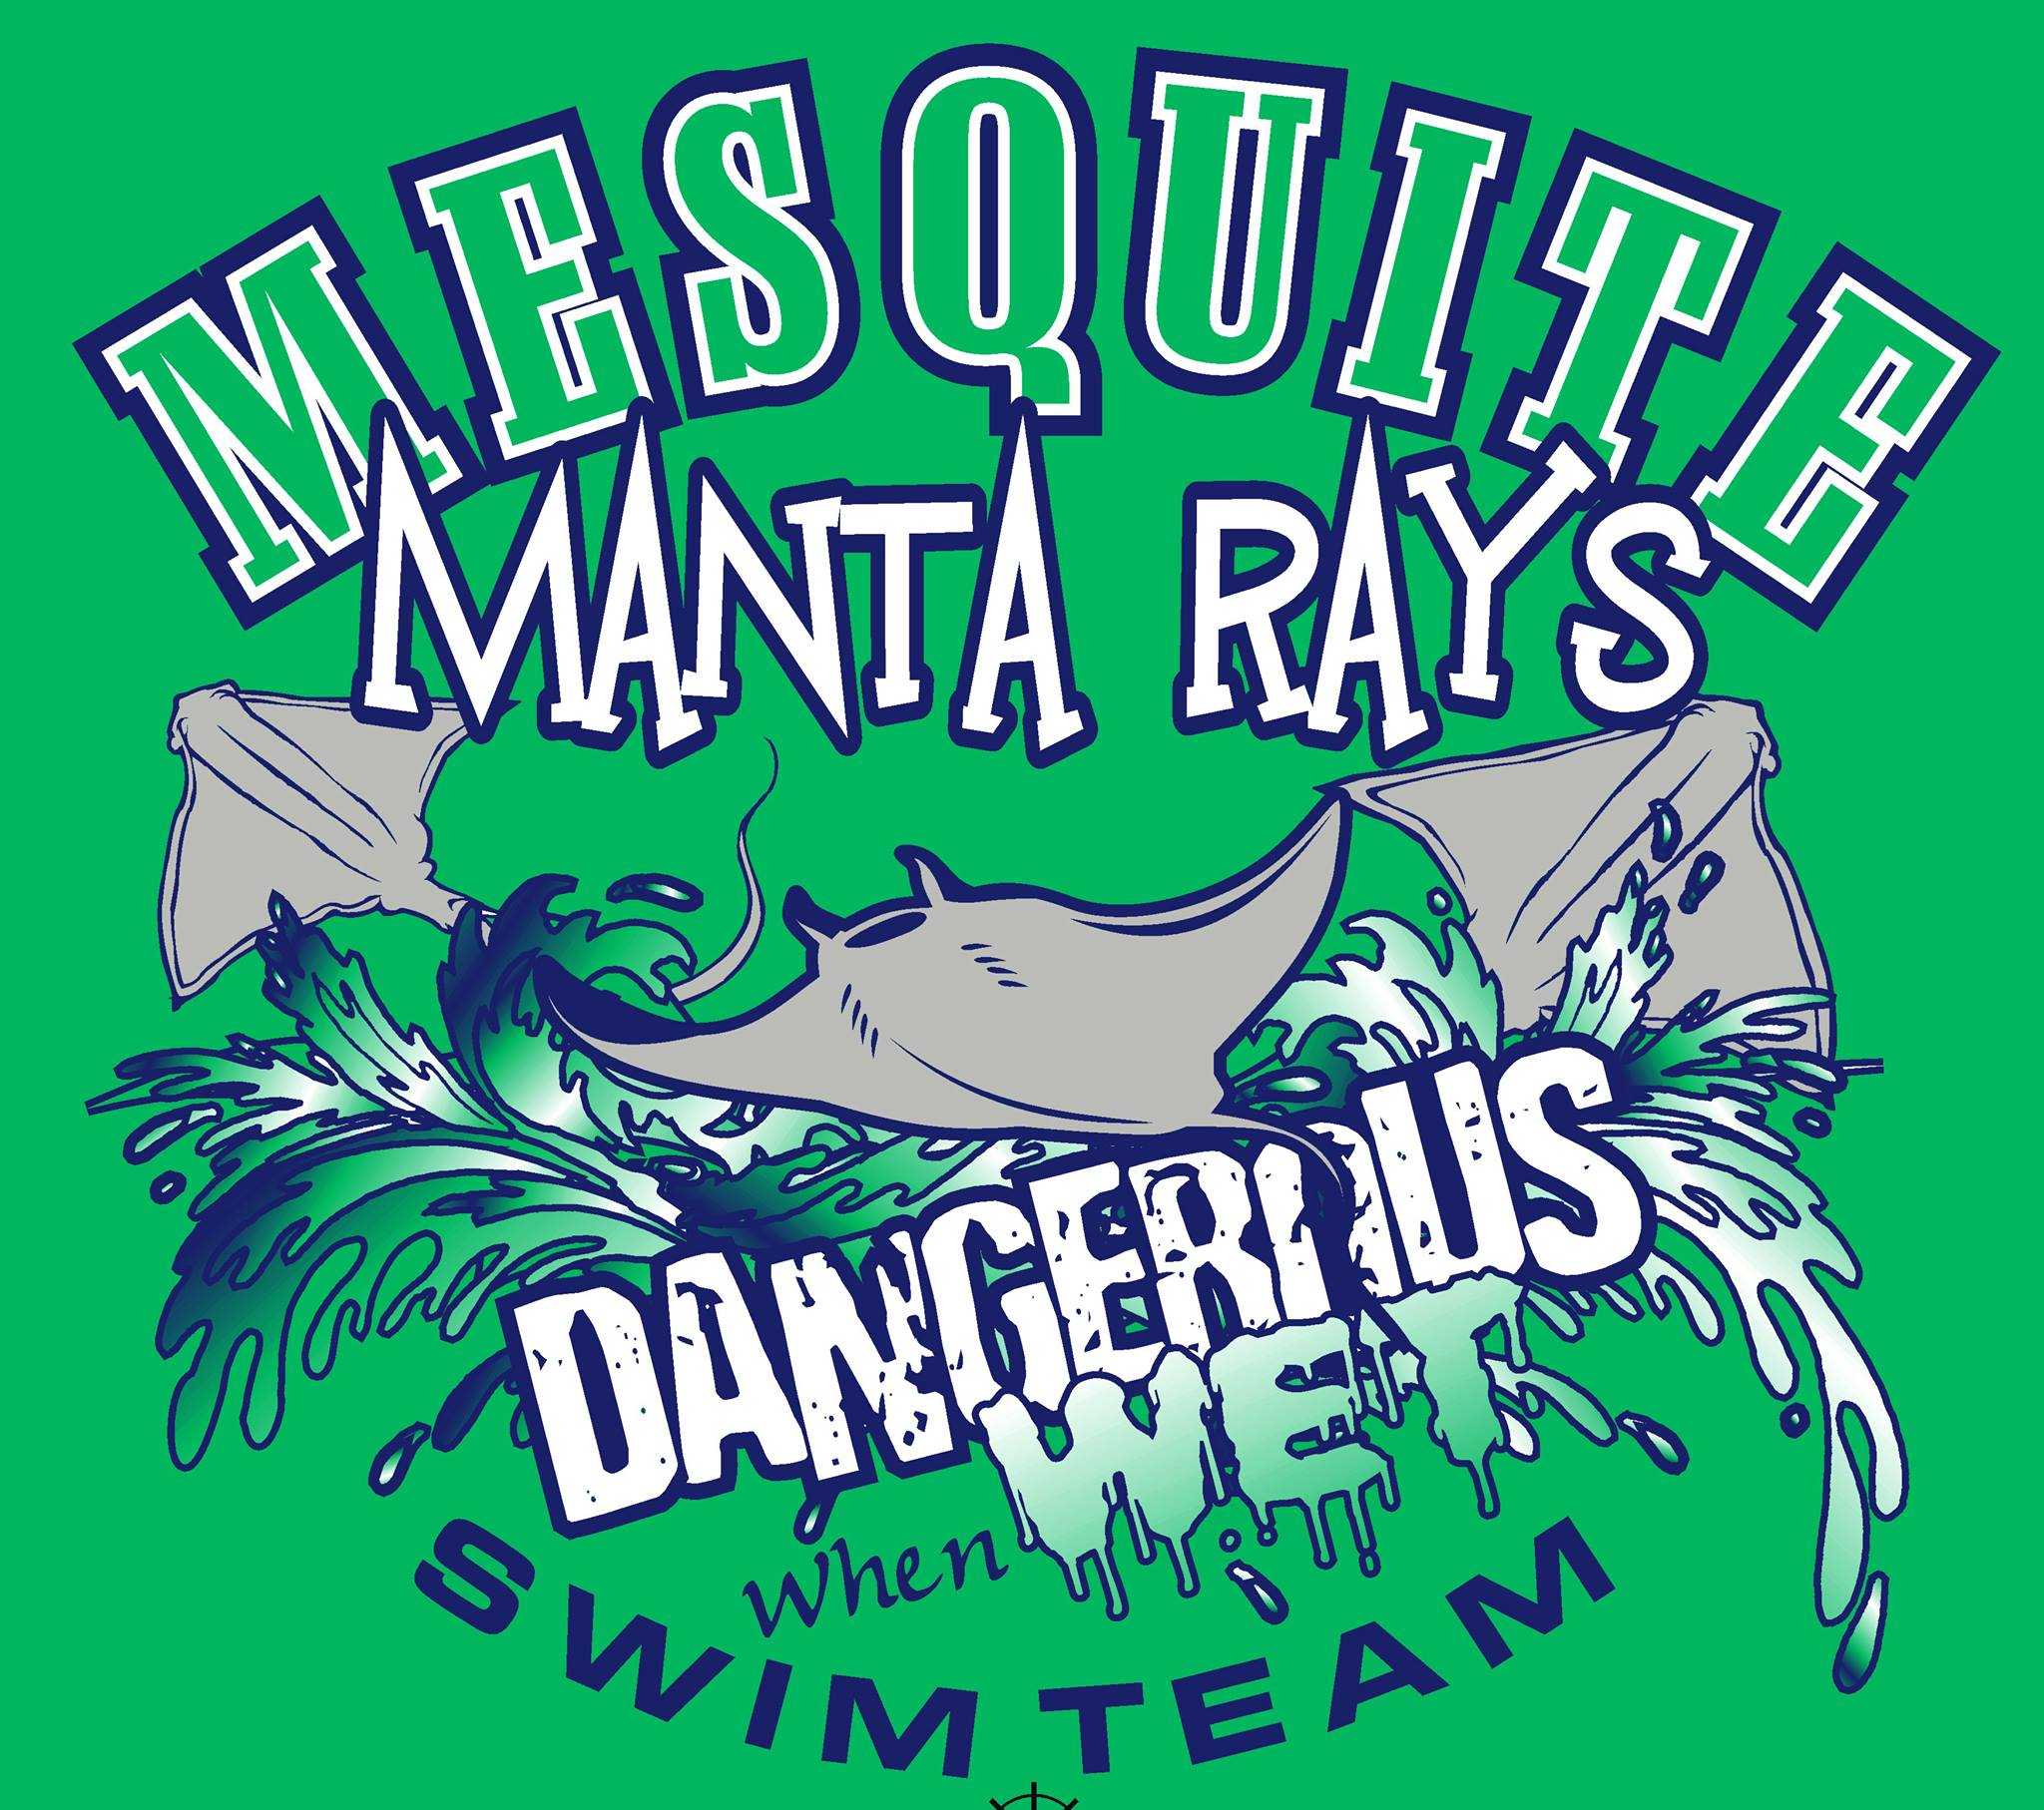 Mesquite Manta Rays Heat Stroker Invitational this weekend